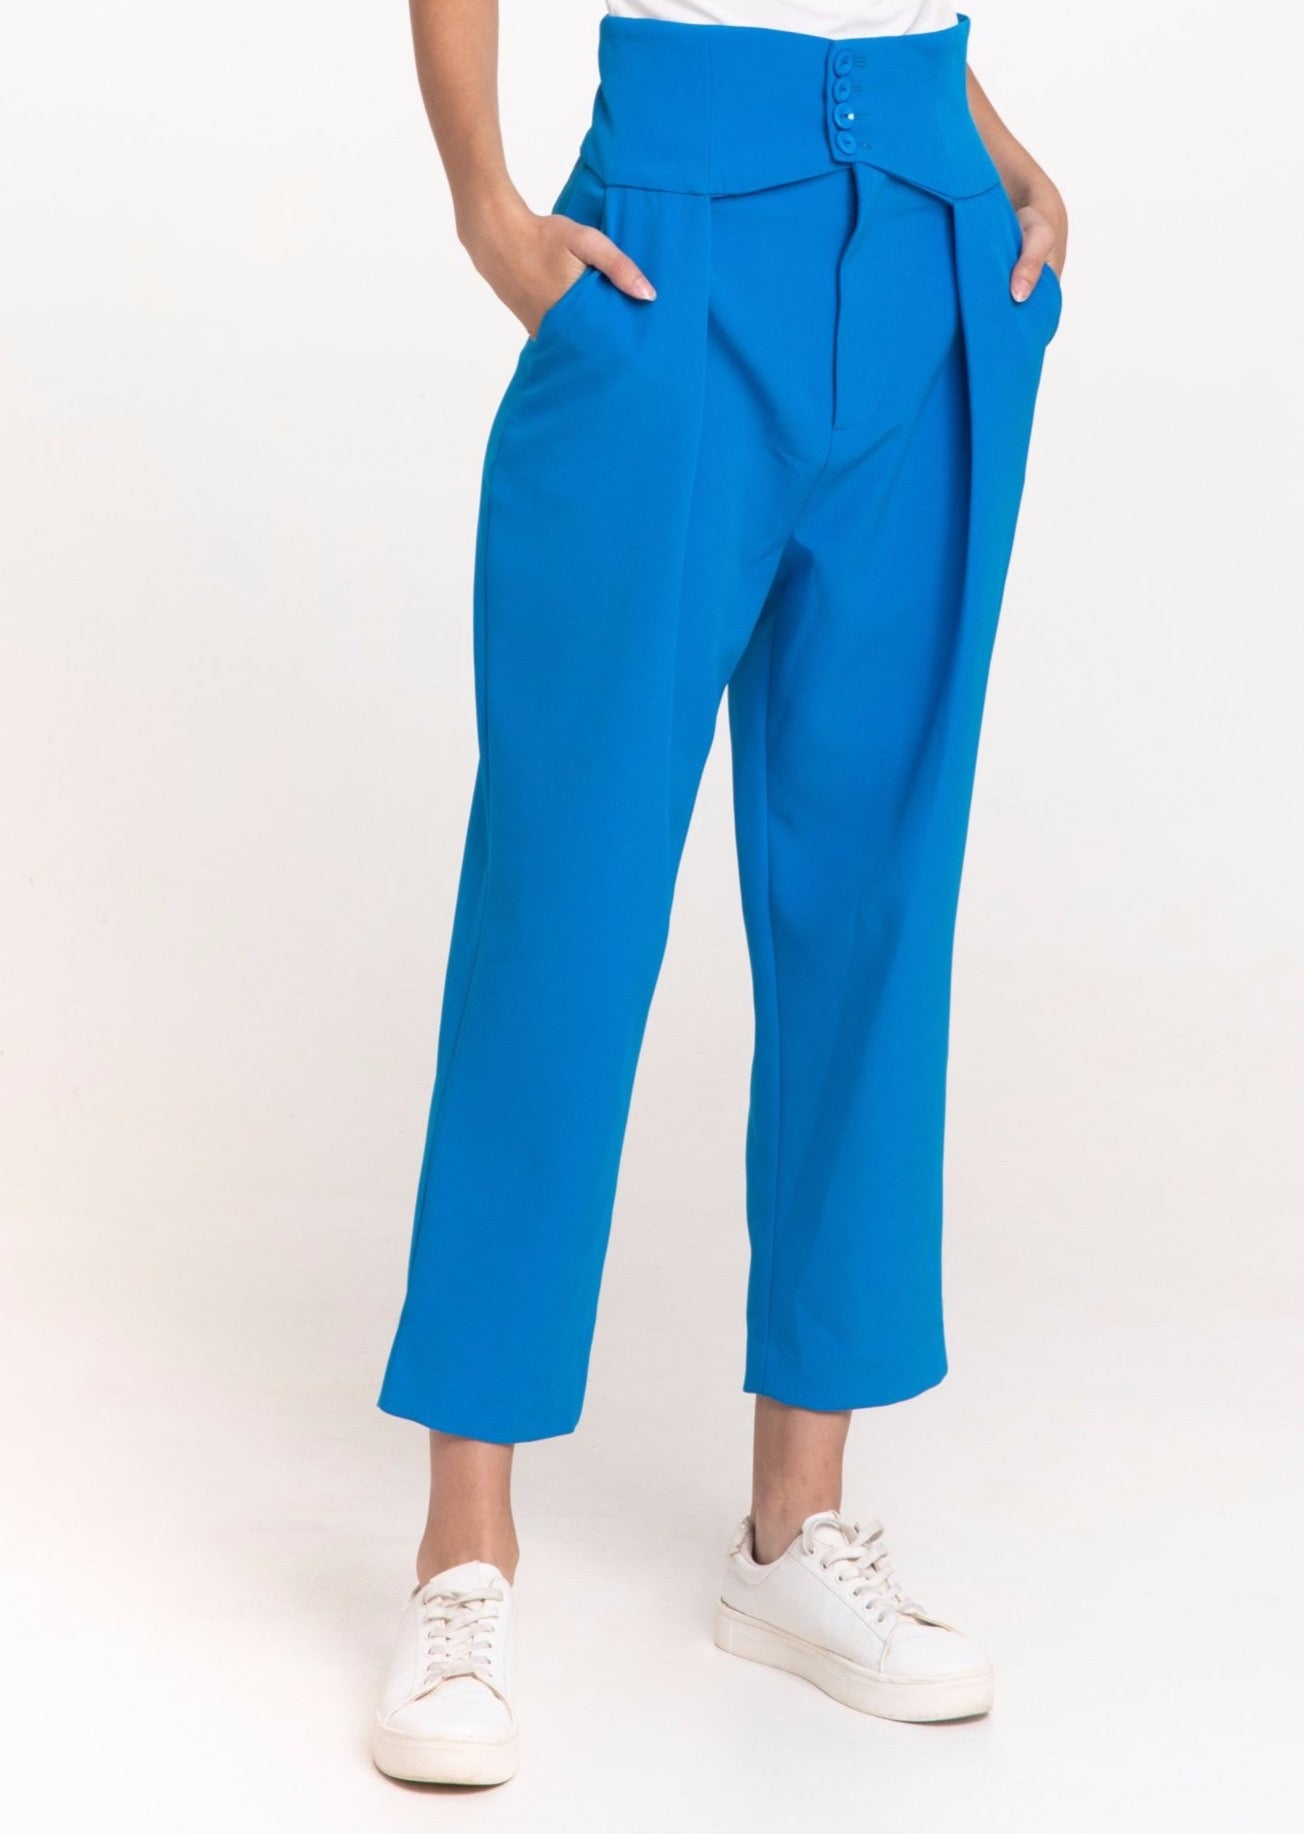 Alfie trousers in blue